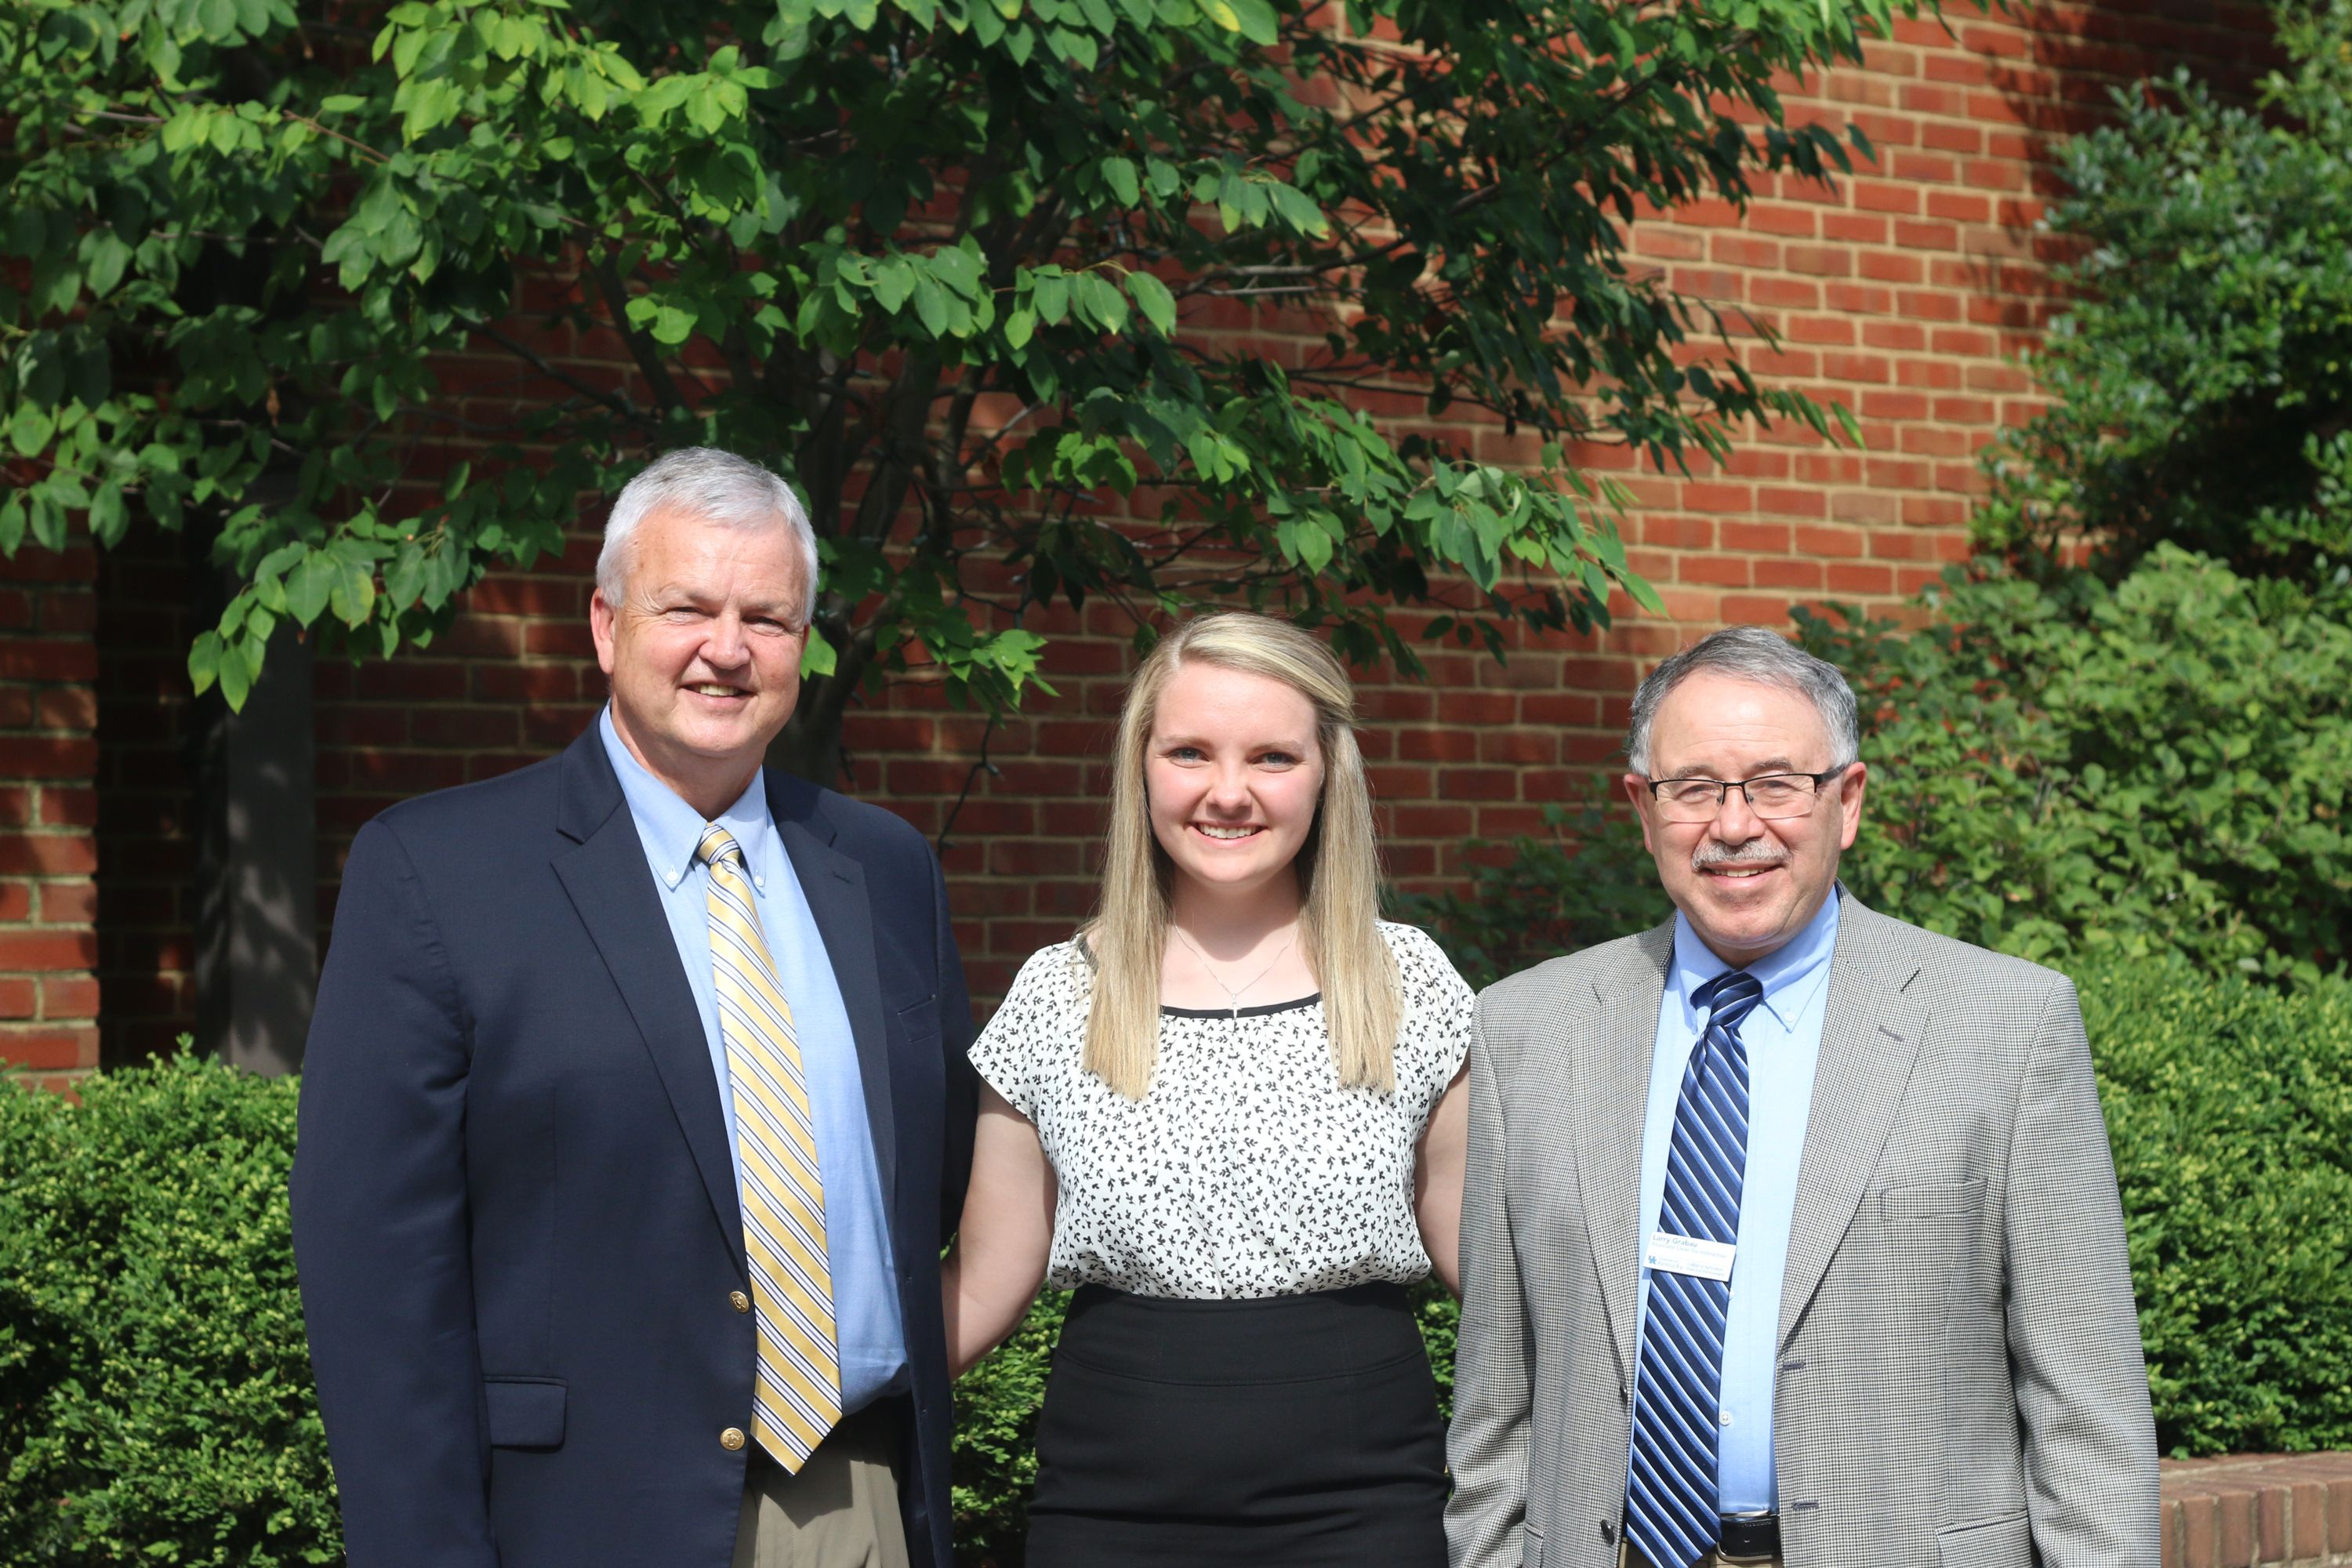 Clarissa Mackey (center) is greeted by Joe Cain, Kentucky Farm Bureau Director of Commodities (left), and Dr. Larry Grabau, Associate Dean for Academic Programs of the University of Kentucky College of Agriculture, Food and Environment (right), during the 2017 Institute for Future Agricultural Leaders (IFAL).